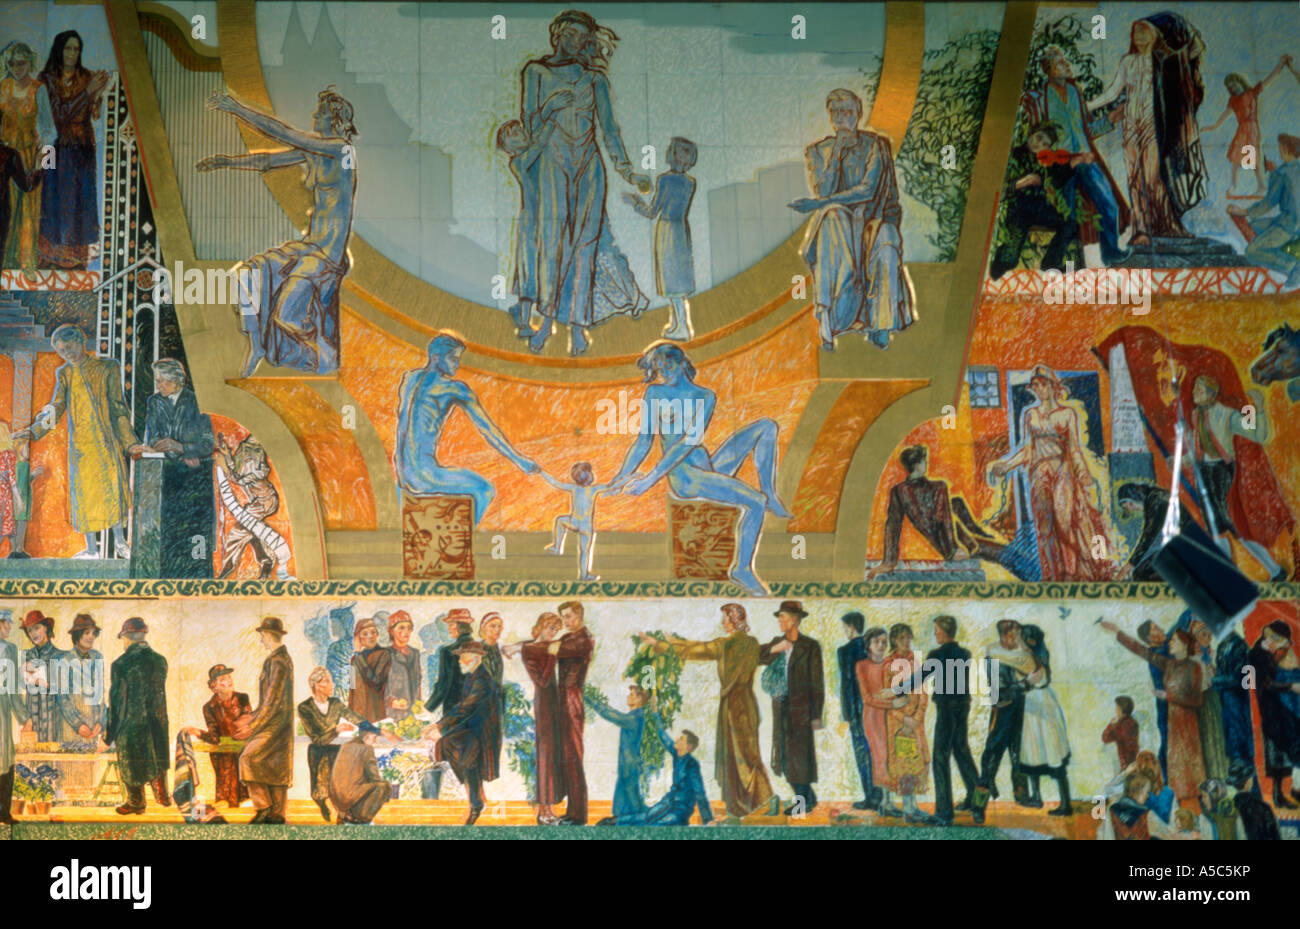 Norway. Oslo. Town hall, interior mural - Stock Image